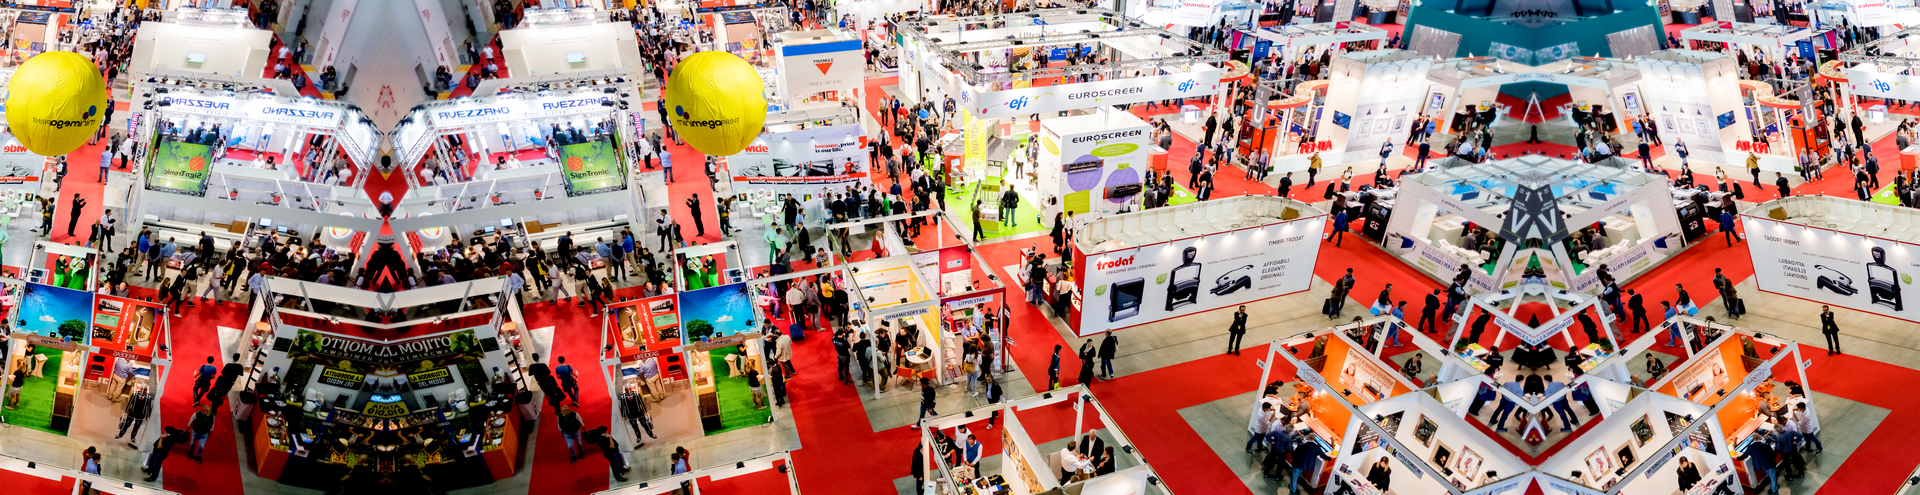 How to Design an Exhibition Stand for Your Business